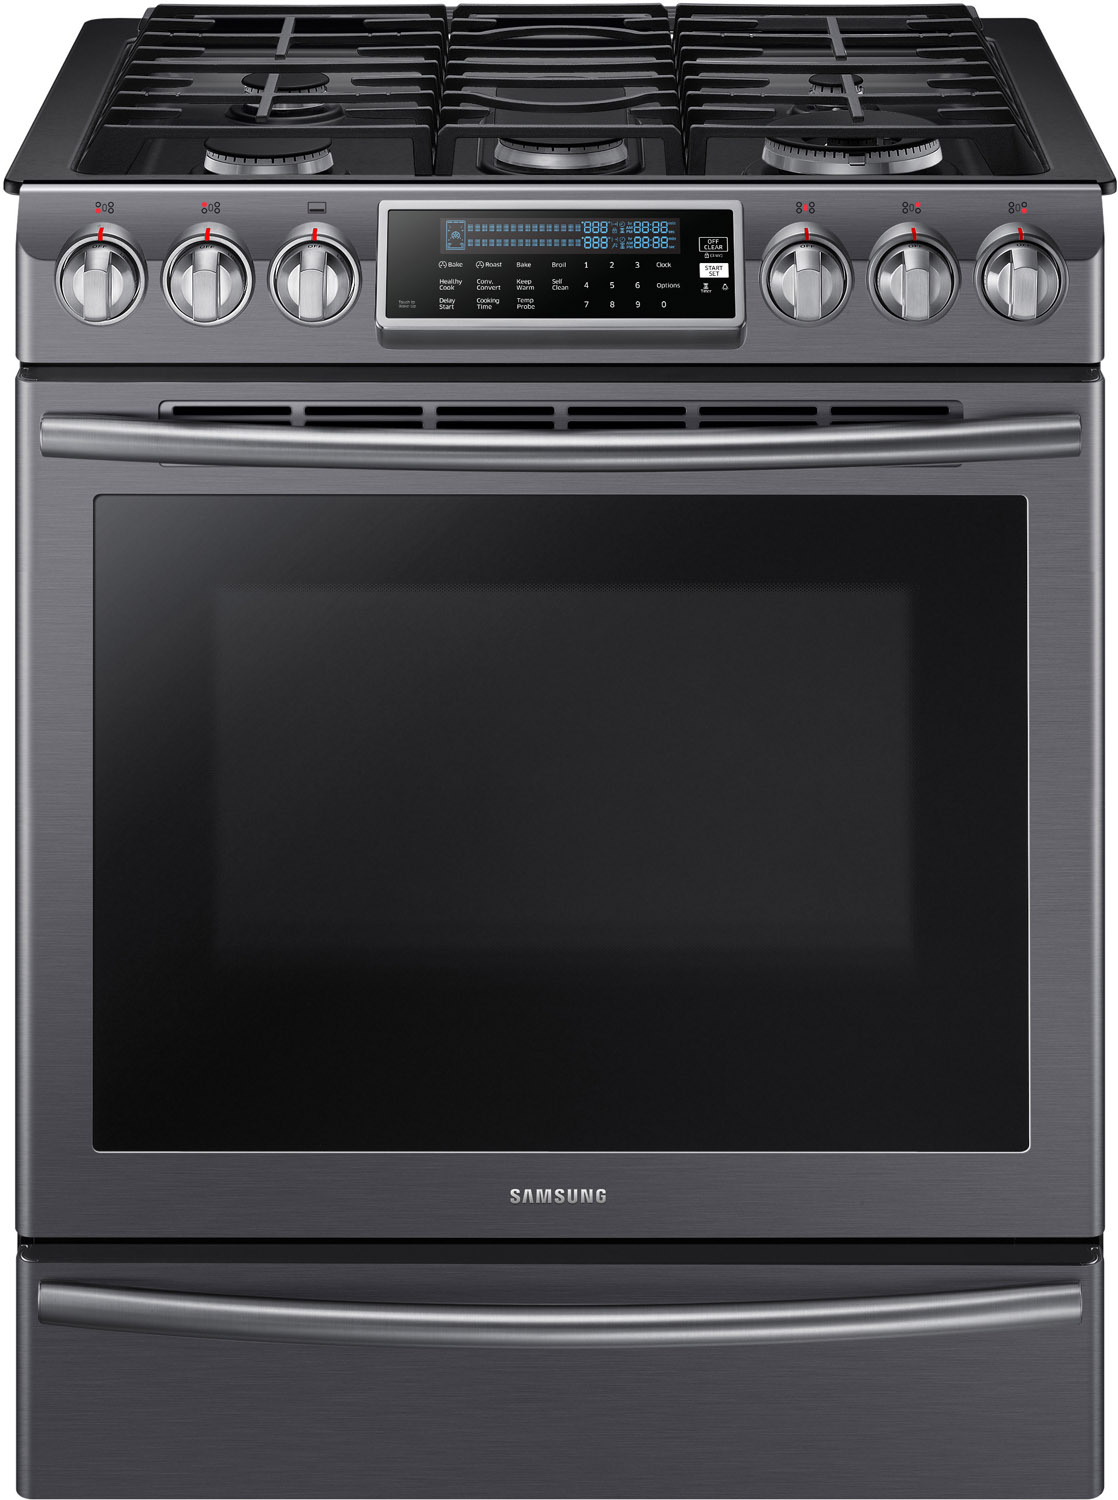 Samsung 30 Black Stainless Steel Slide In Convection Gas